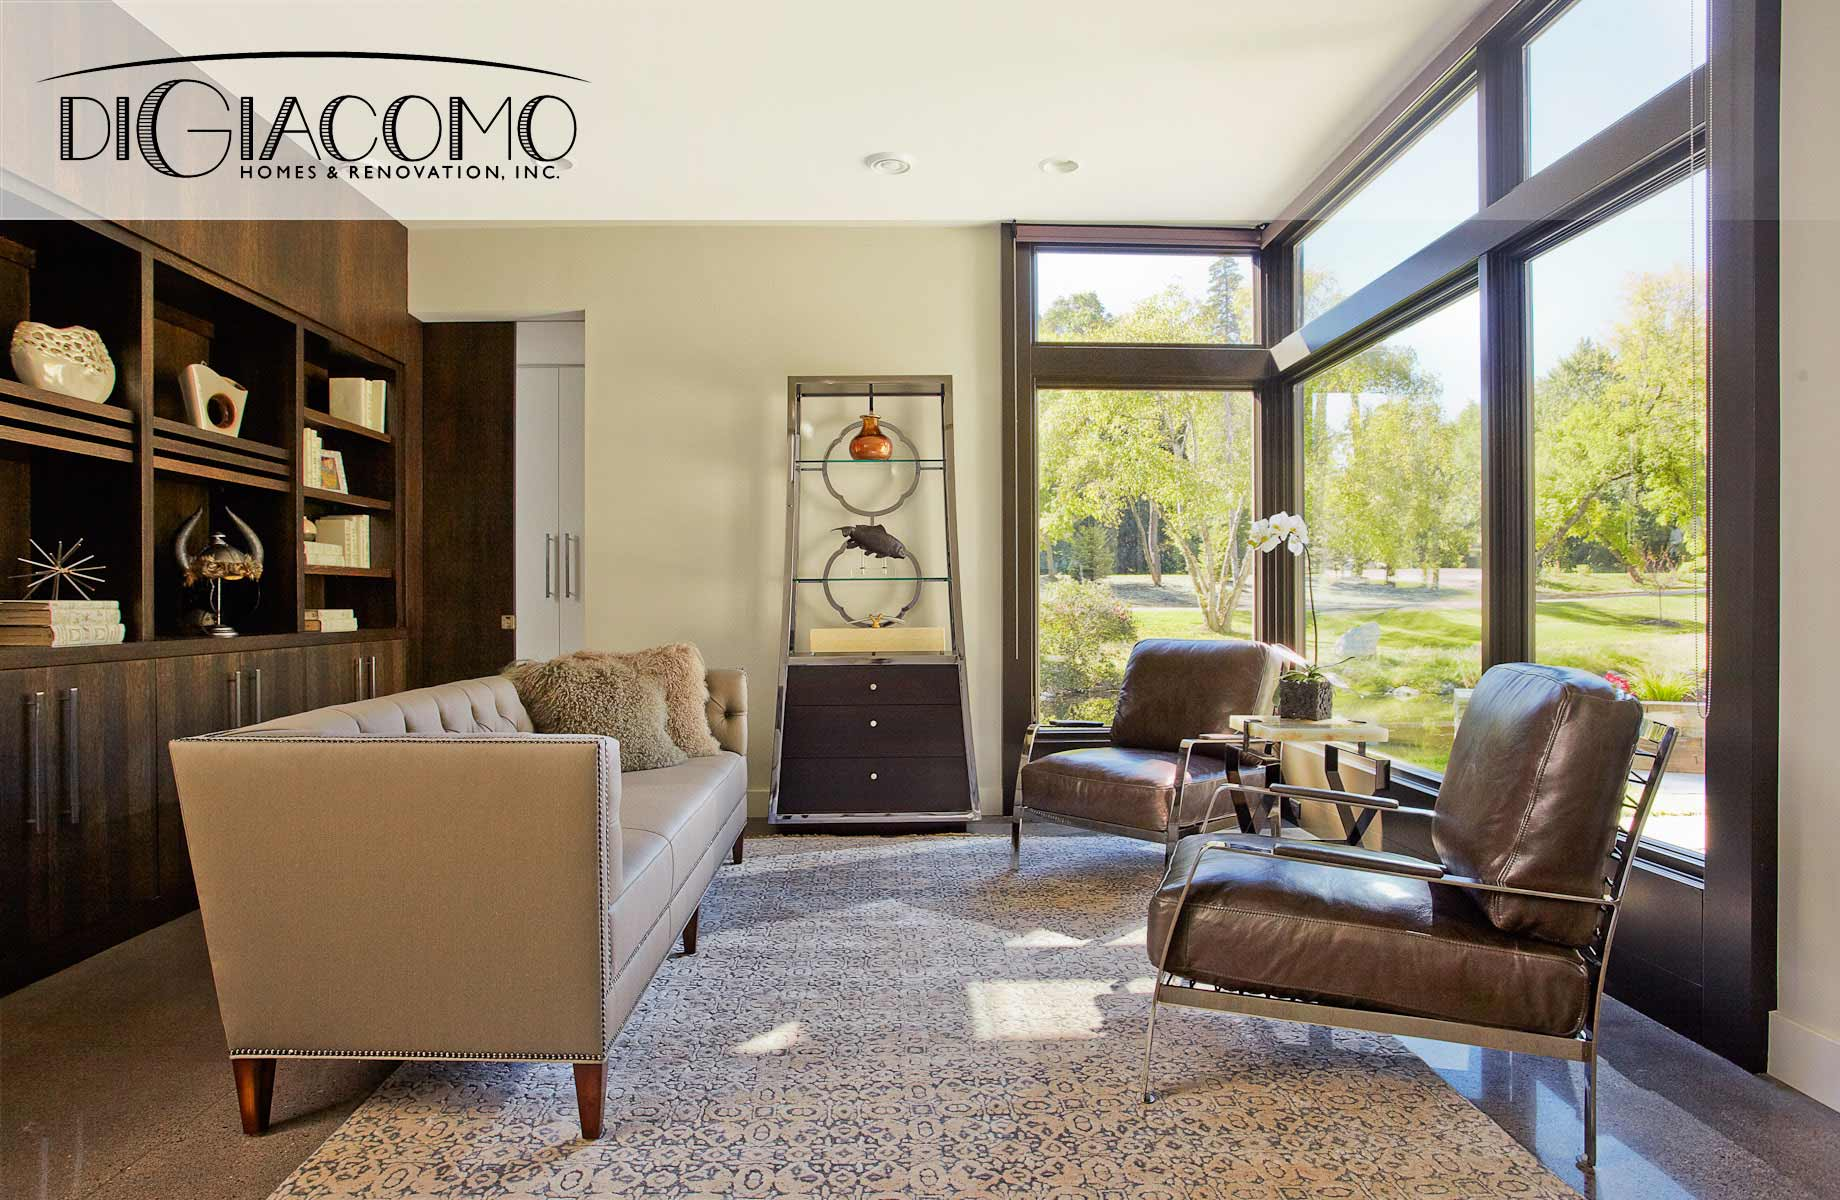 Design Build Remodeler - Minneapolis, MN – Remodeling and Interior Design - DiGiacomo Homes & Renovation.